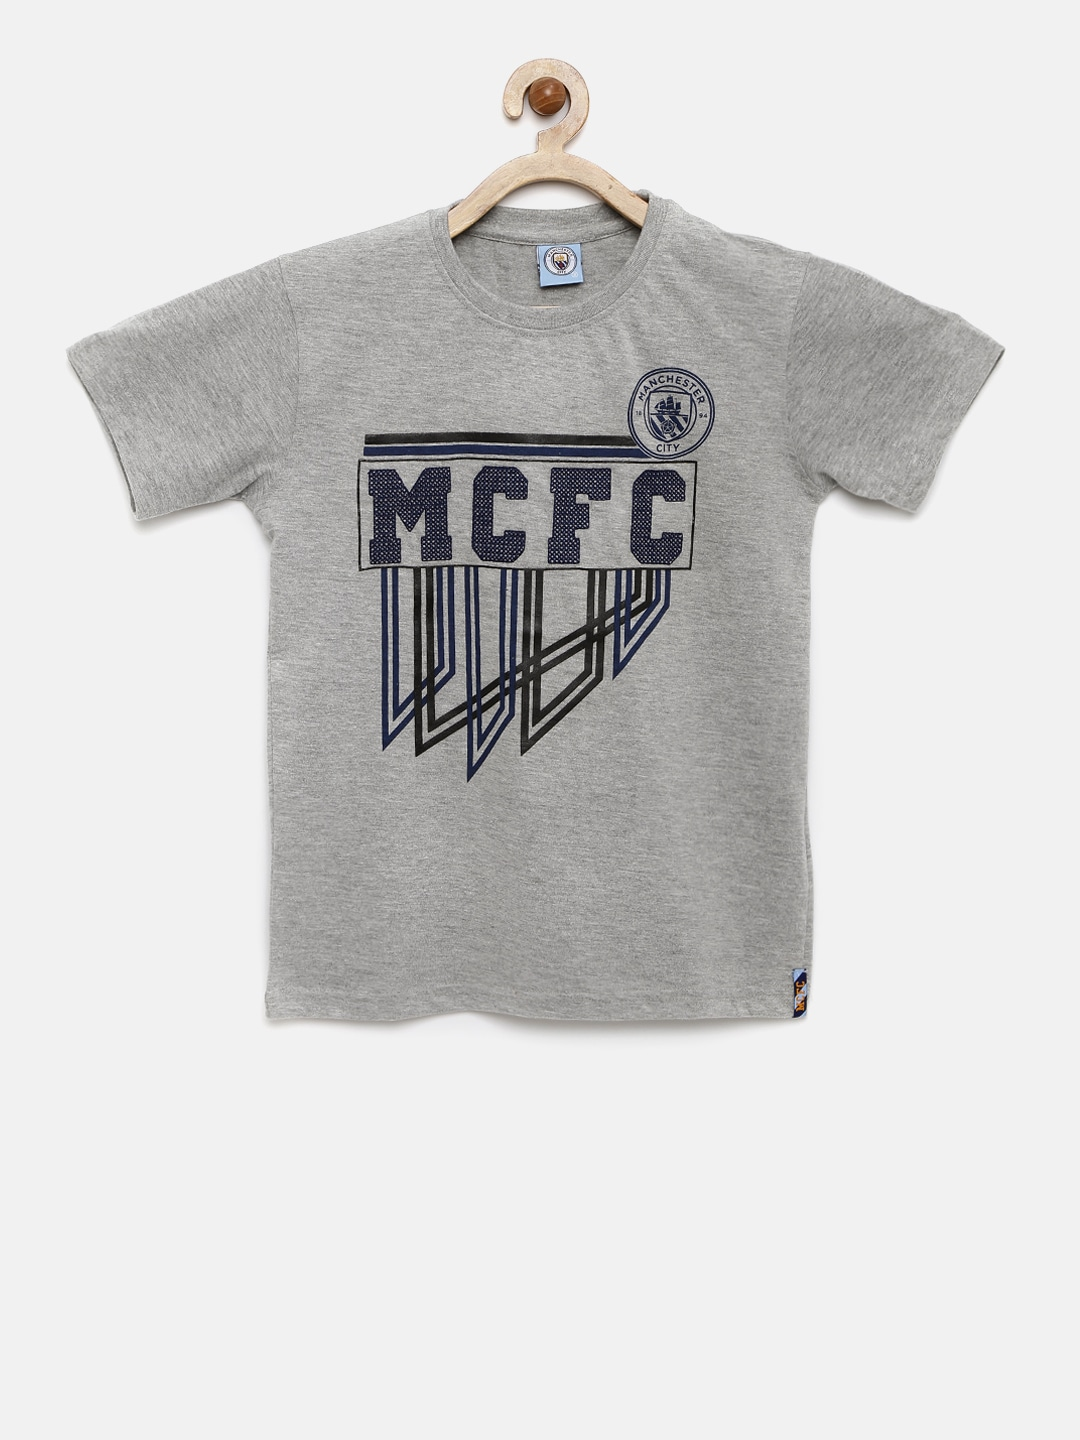 Manchester United Clothing - Buy Manchester United Clothing Online in India c1f023f5f3414